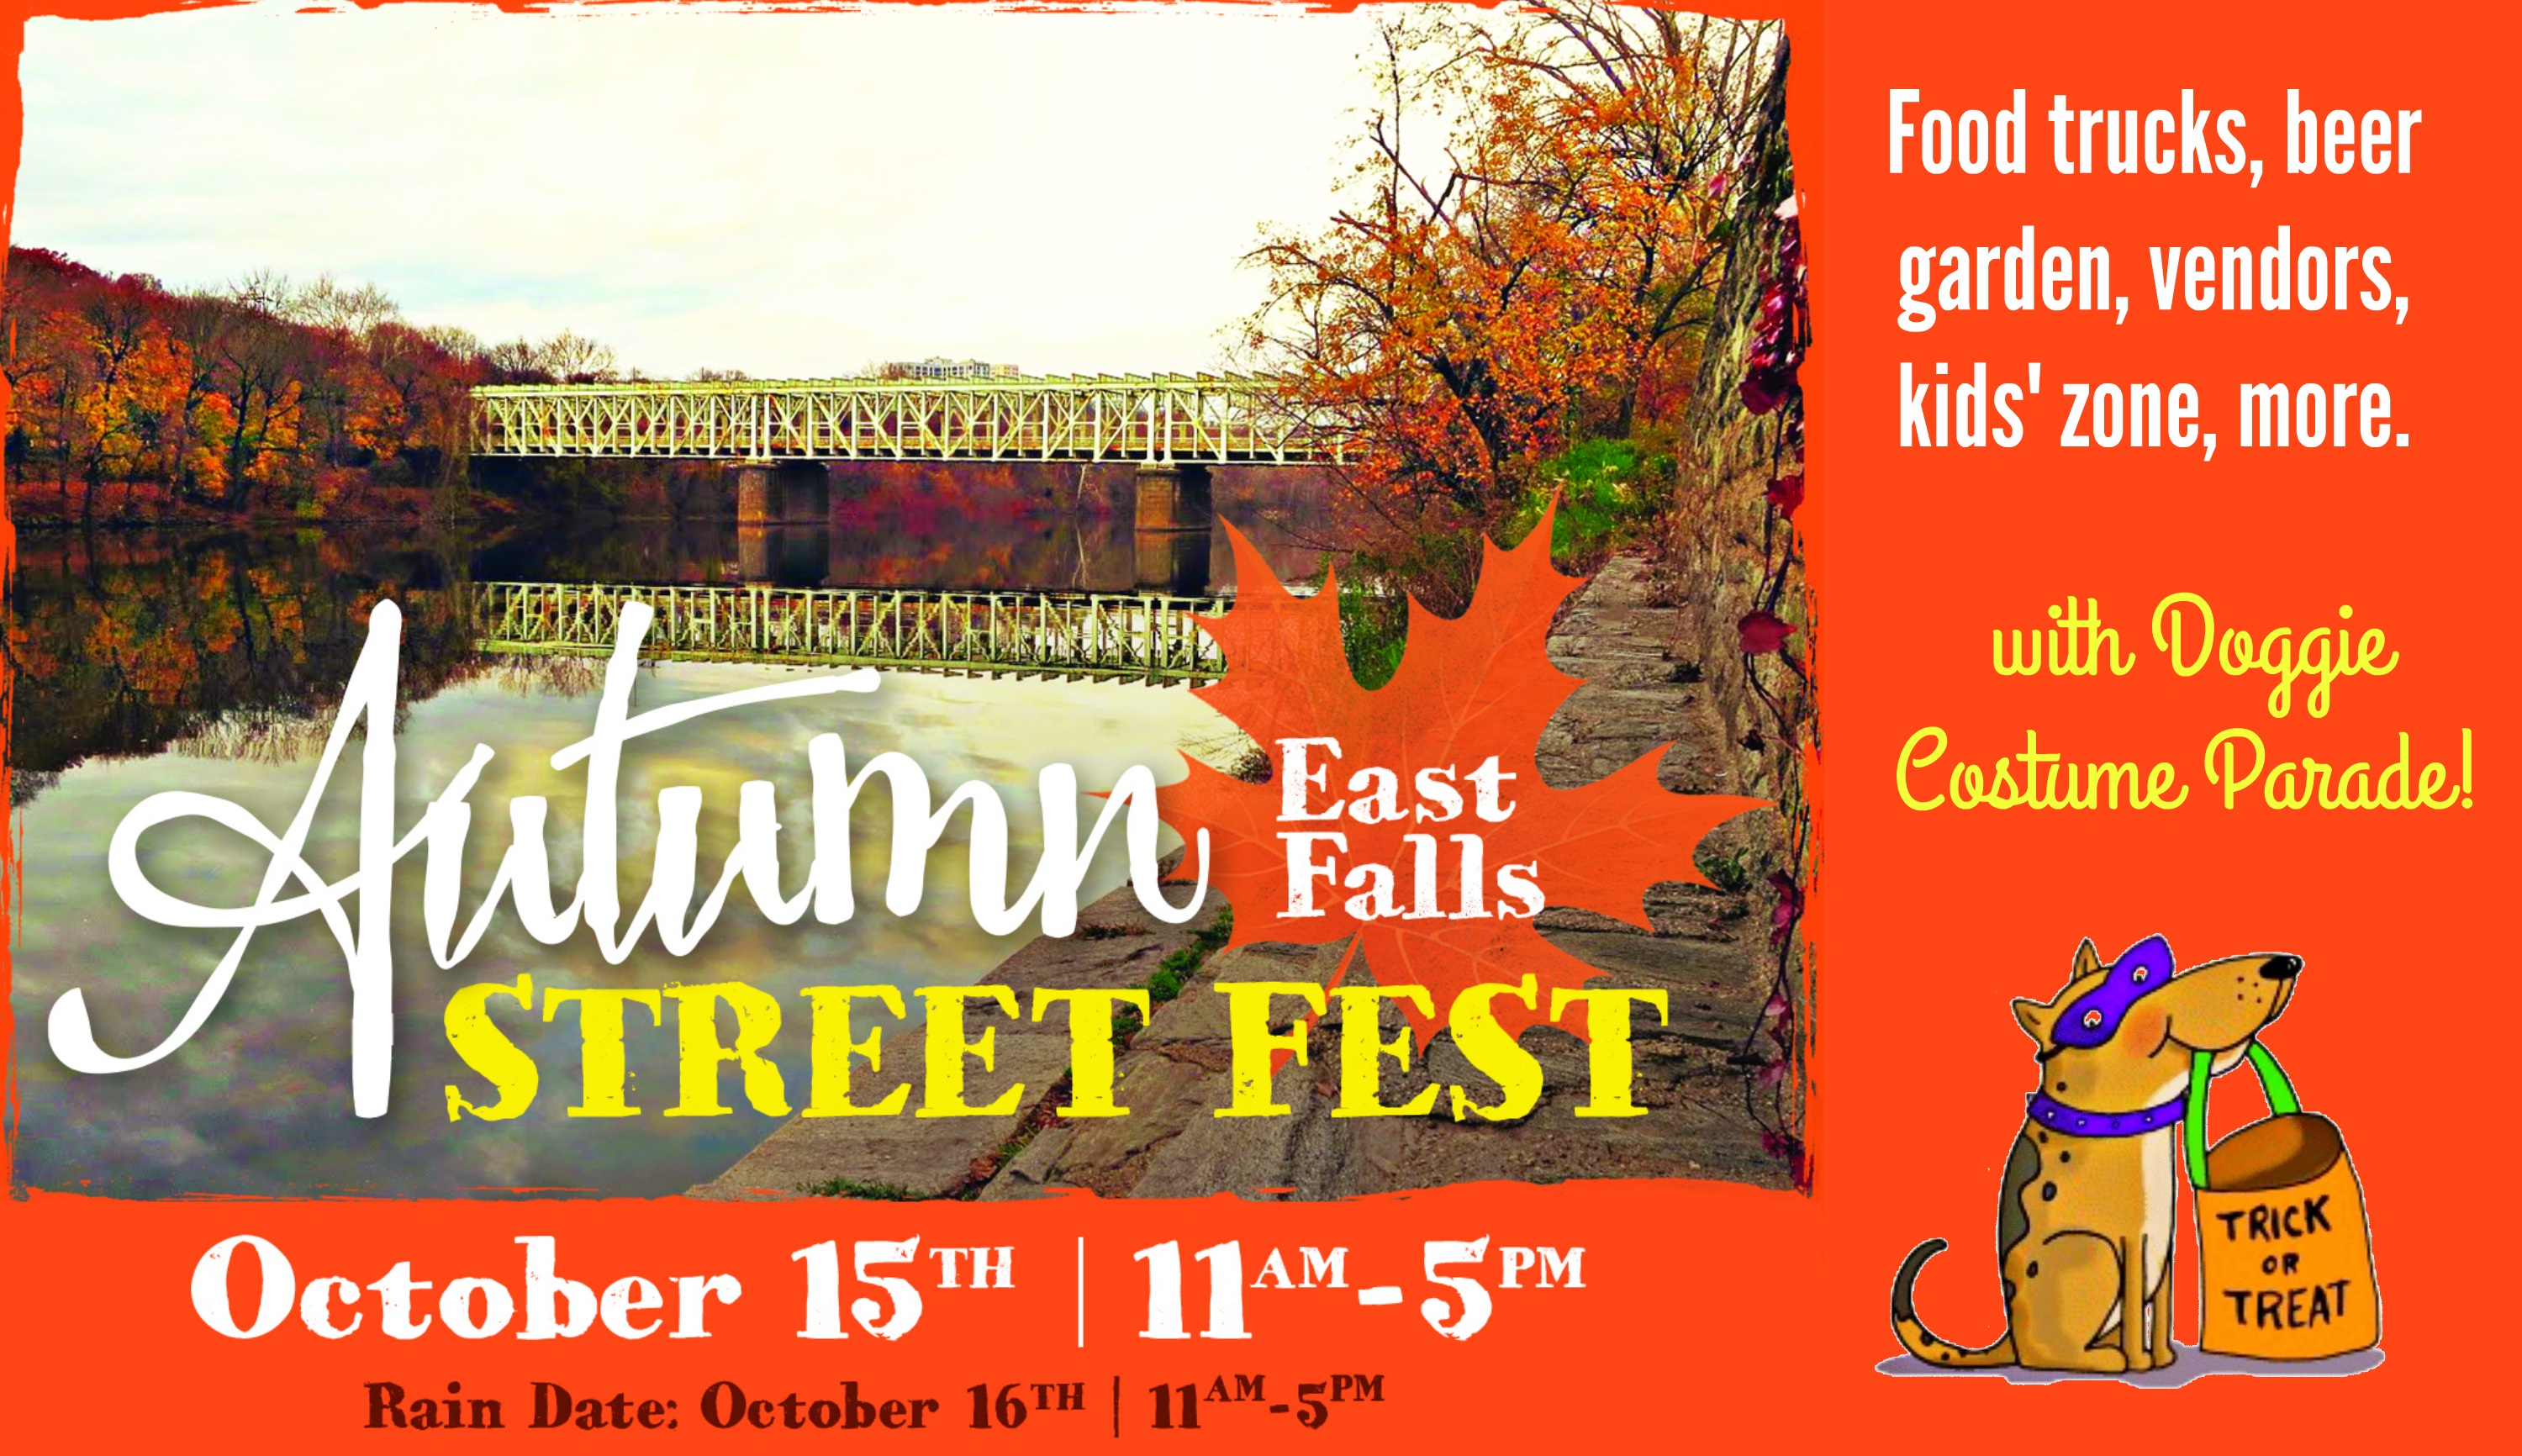 eastfallslocal-halloween-costume-added-to-fall-fest-autumn-street-fest-flyer